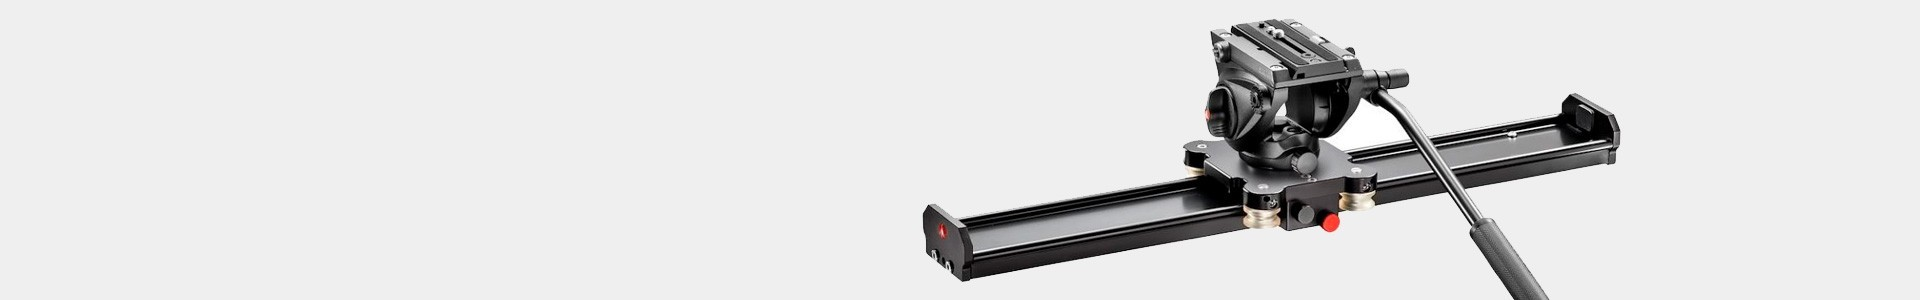 Manfrotto camera sliders - Quality and good price - Avacab